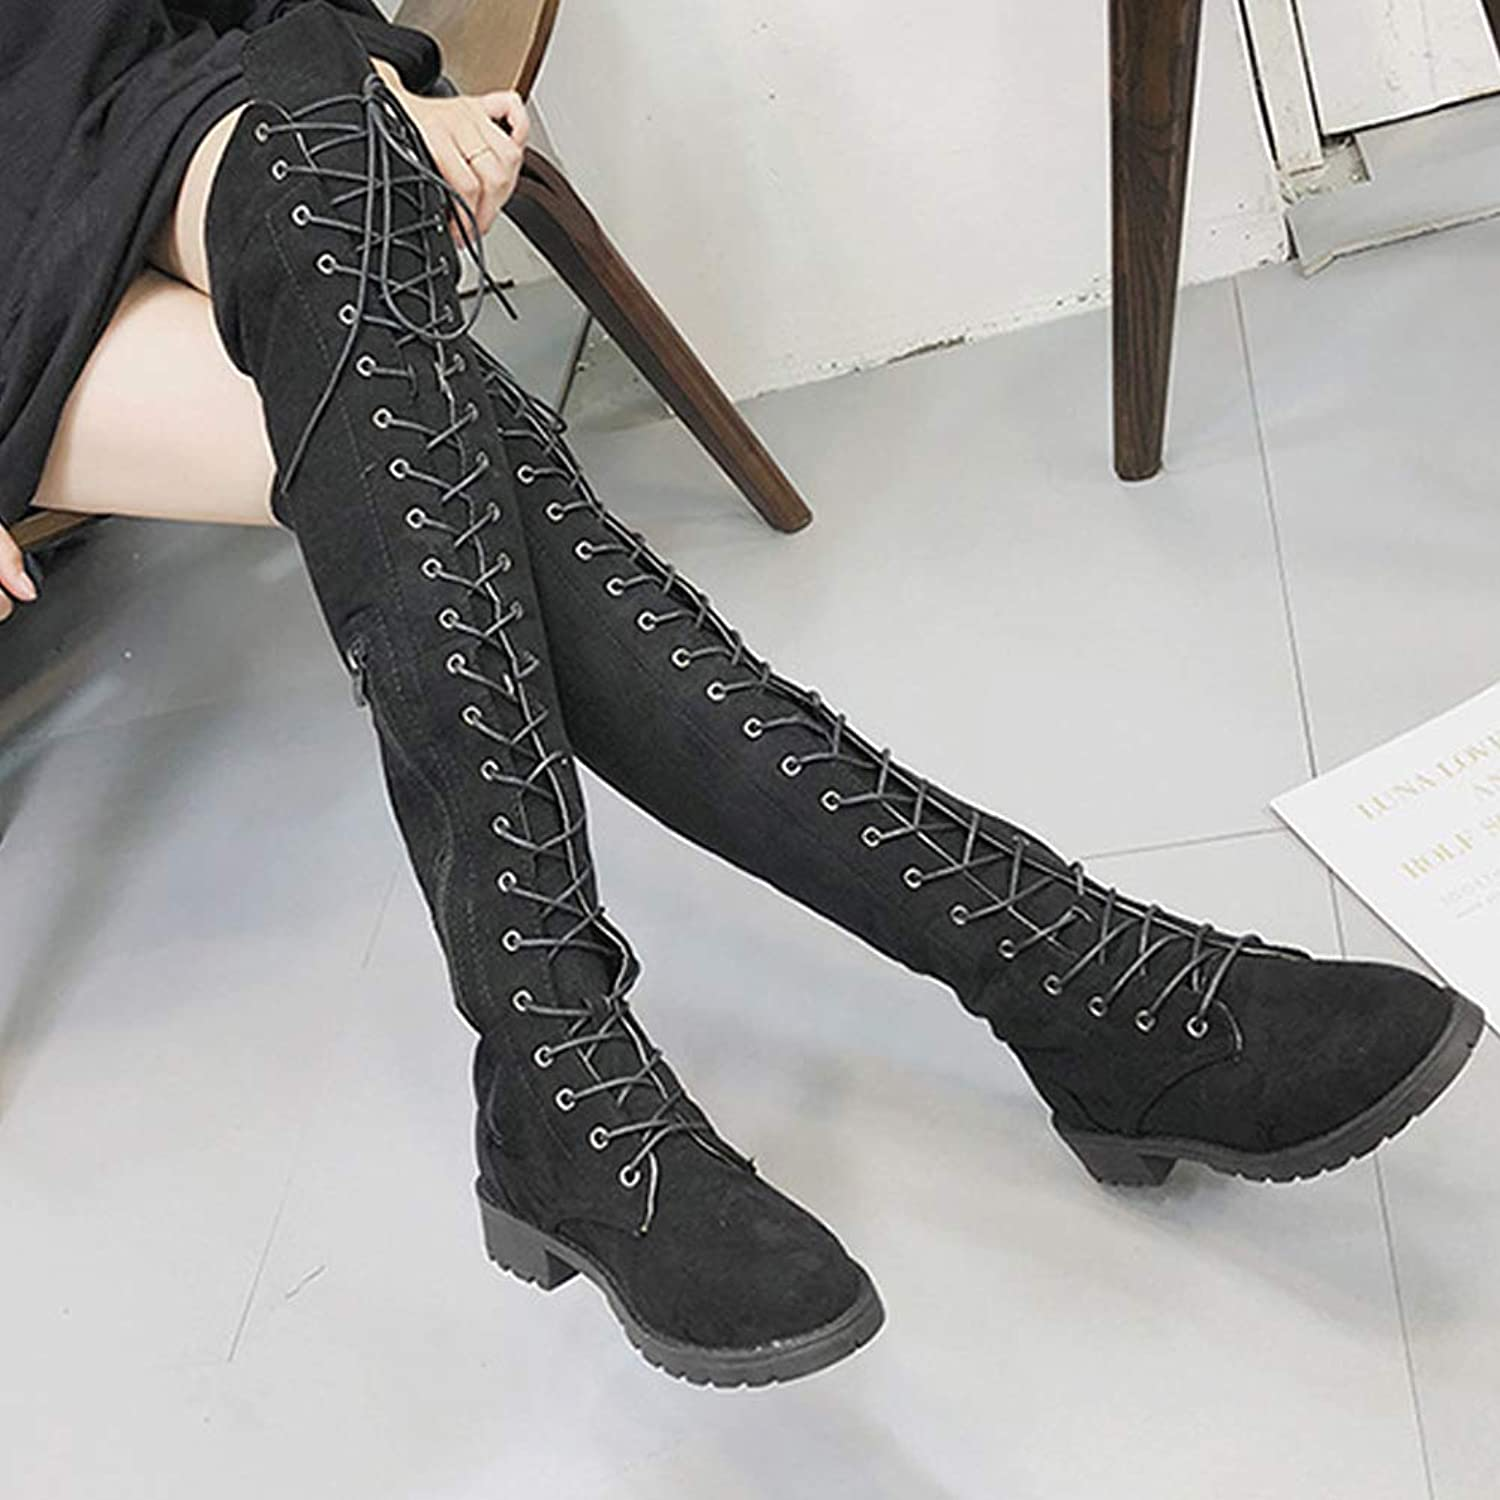 Boots Women Cross-Tied Platform shoes High Boots,Women Over The Knee Boots Flat Heel,Black,39